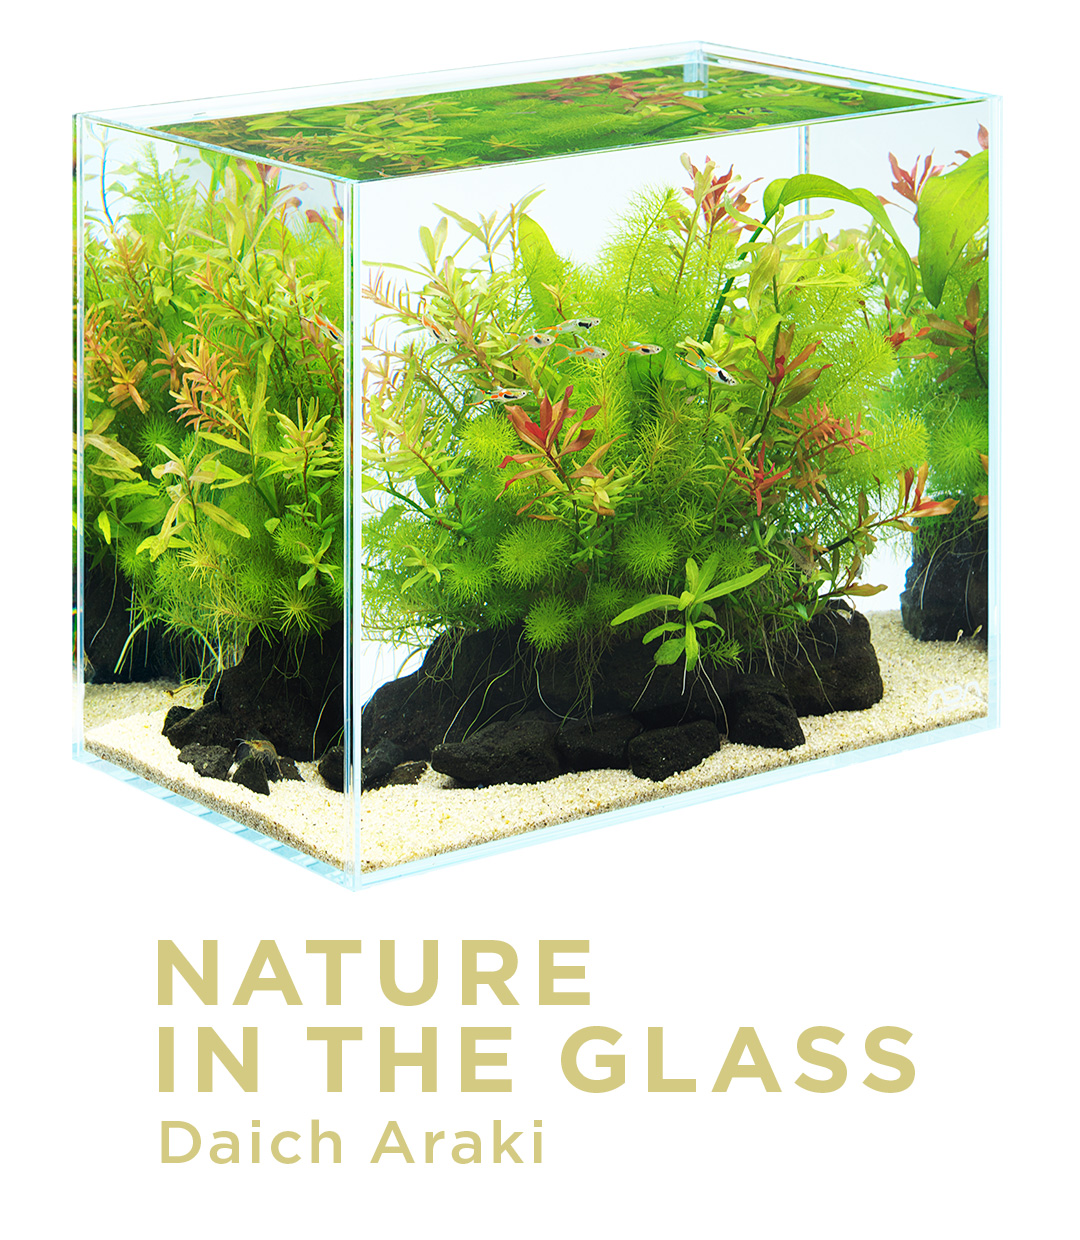 NATURE IN THE GLASS 'A bouquet of aquatic plants'